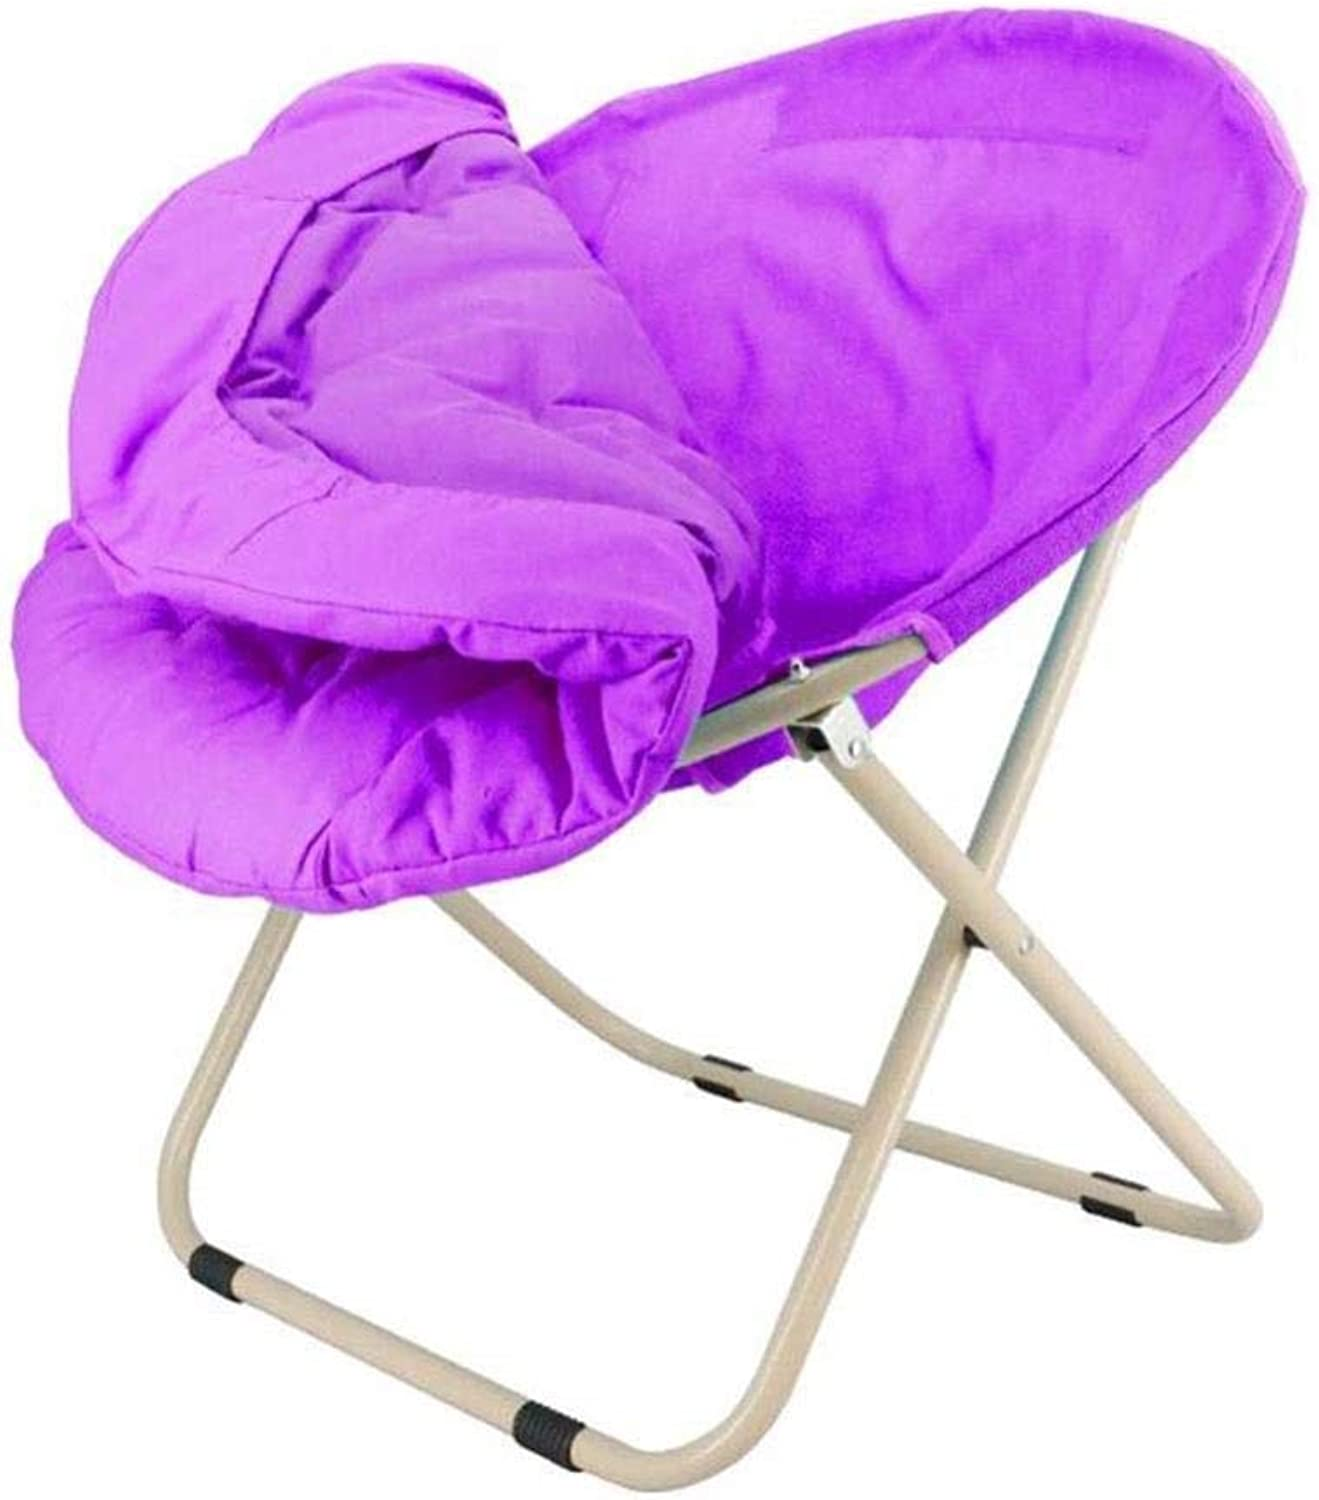 FENGFAN Folding Chair Lounge Moon Chair Adult Sun Lazy Chair Radar Chair Removable Round Sofa Chair Bearing Strong (color   Purple)